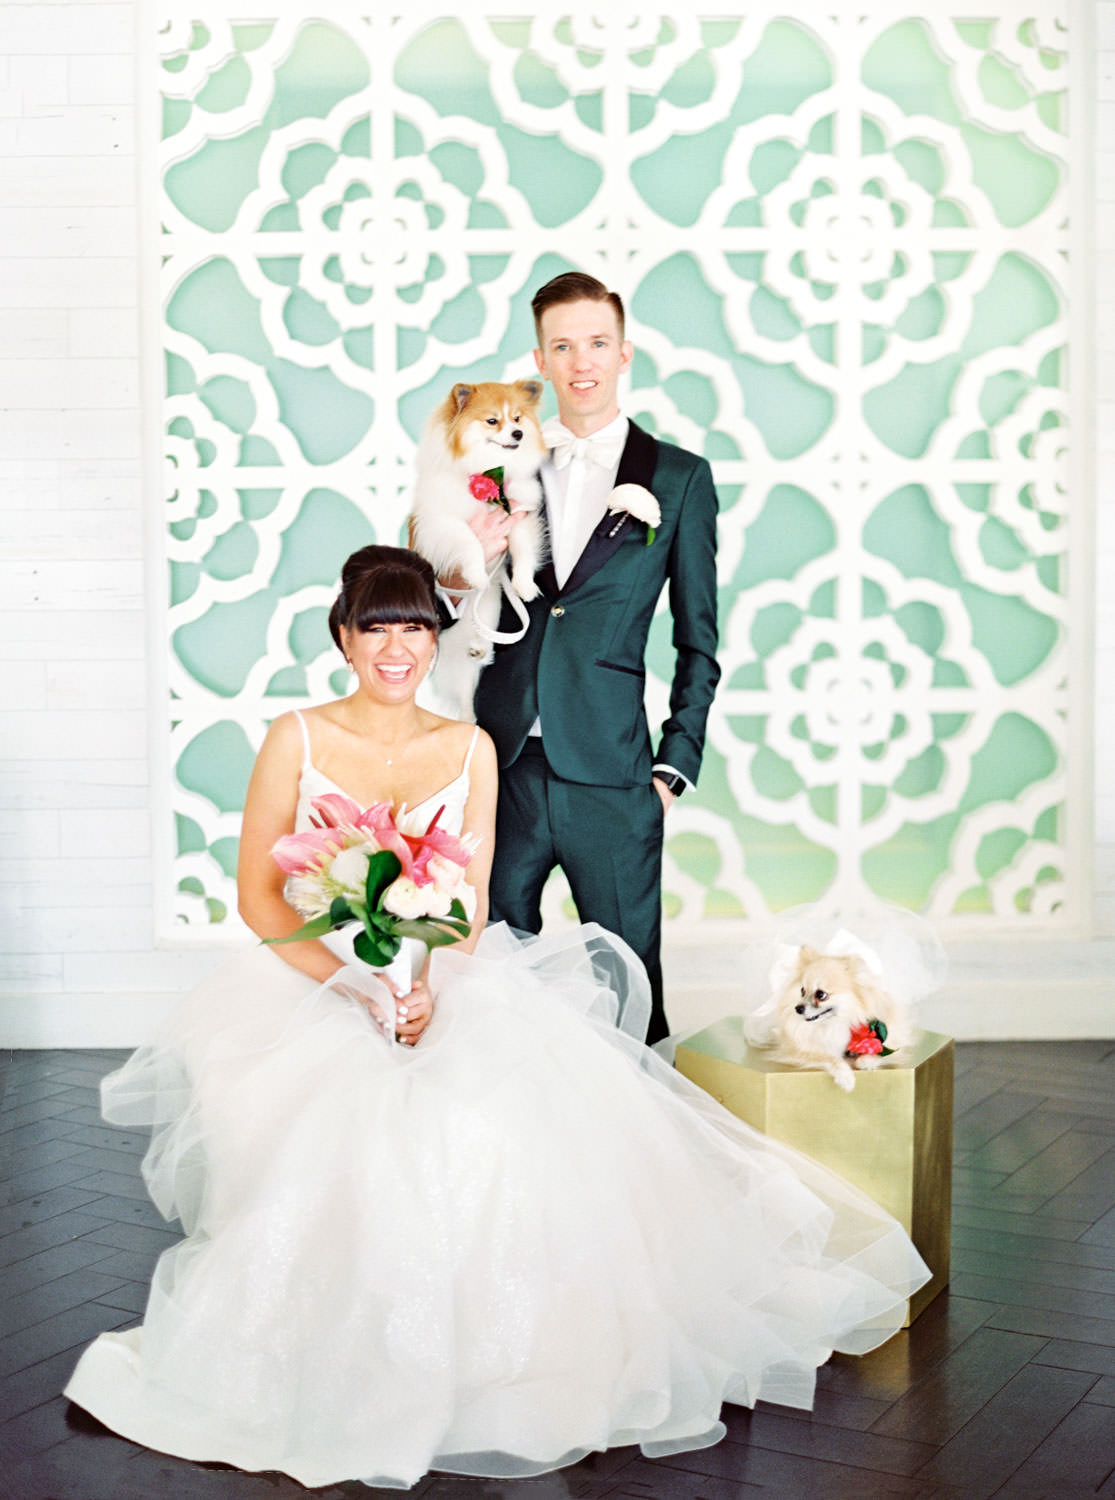 Bride in beehive updo wearing a Matthew Christopher gown sitting next to Pomeranian in a wedding tutu on a gold platform and groom wearing a dark teal tux holding another Pomeranian inside the colorful Riviera Palm Springs lobby. Bridal bouquet with protea, pink anthurium, and palm leaves. Cavin Elizabeth Photography